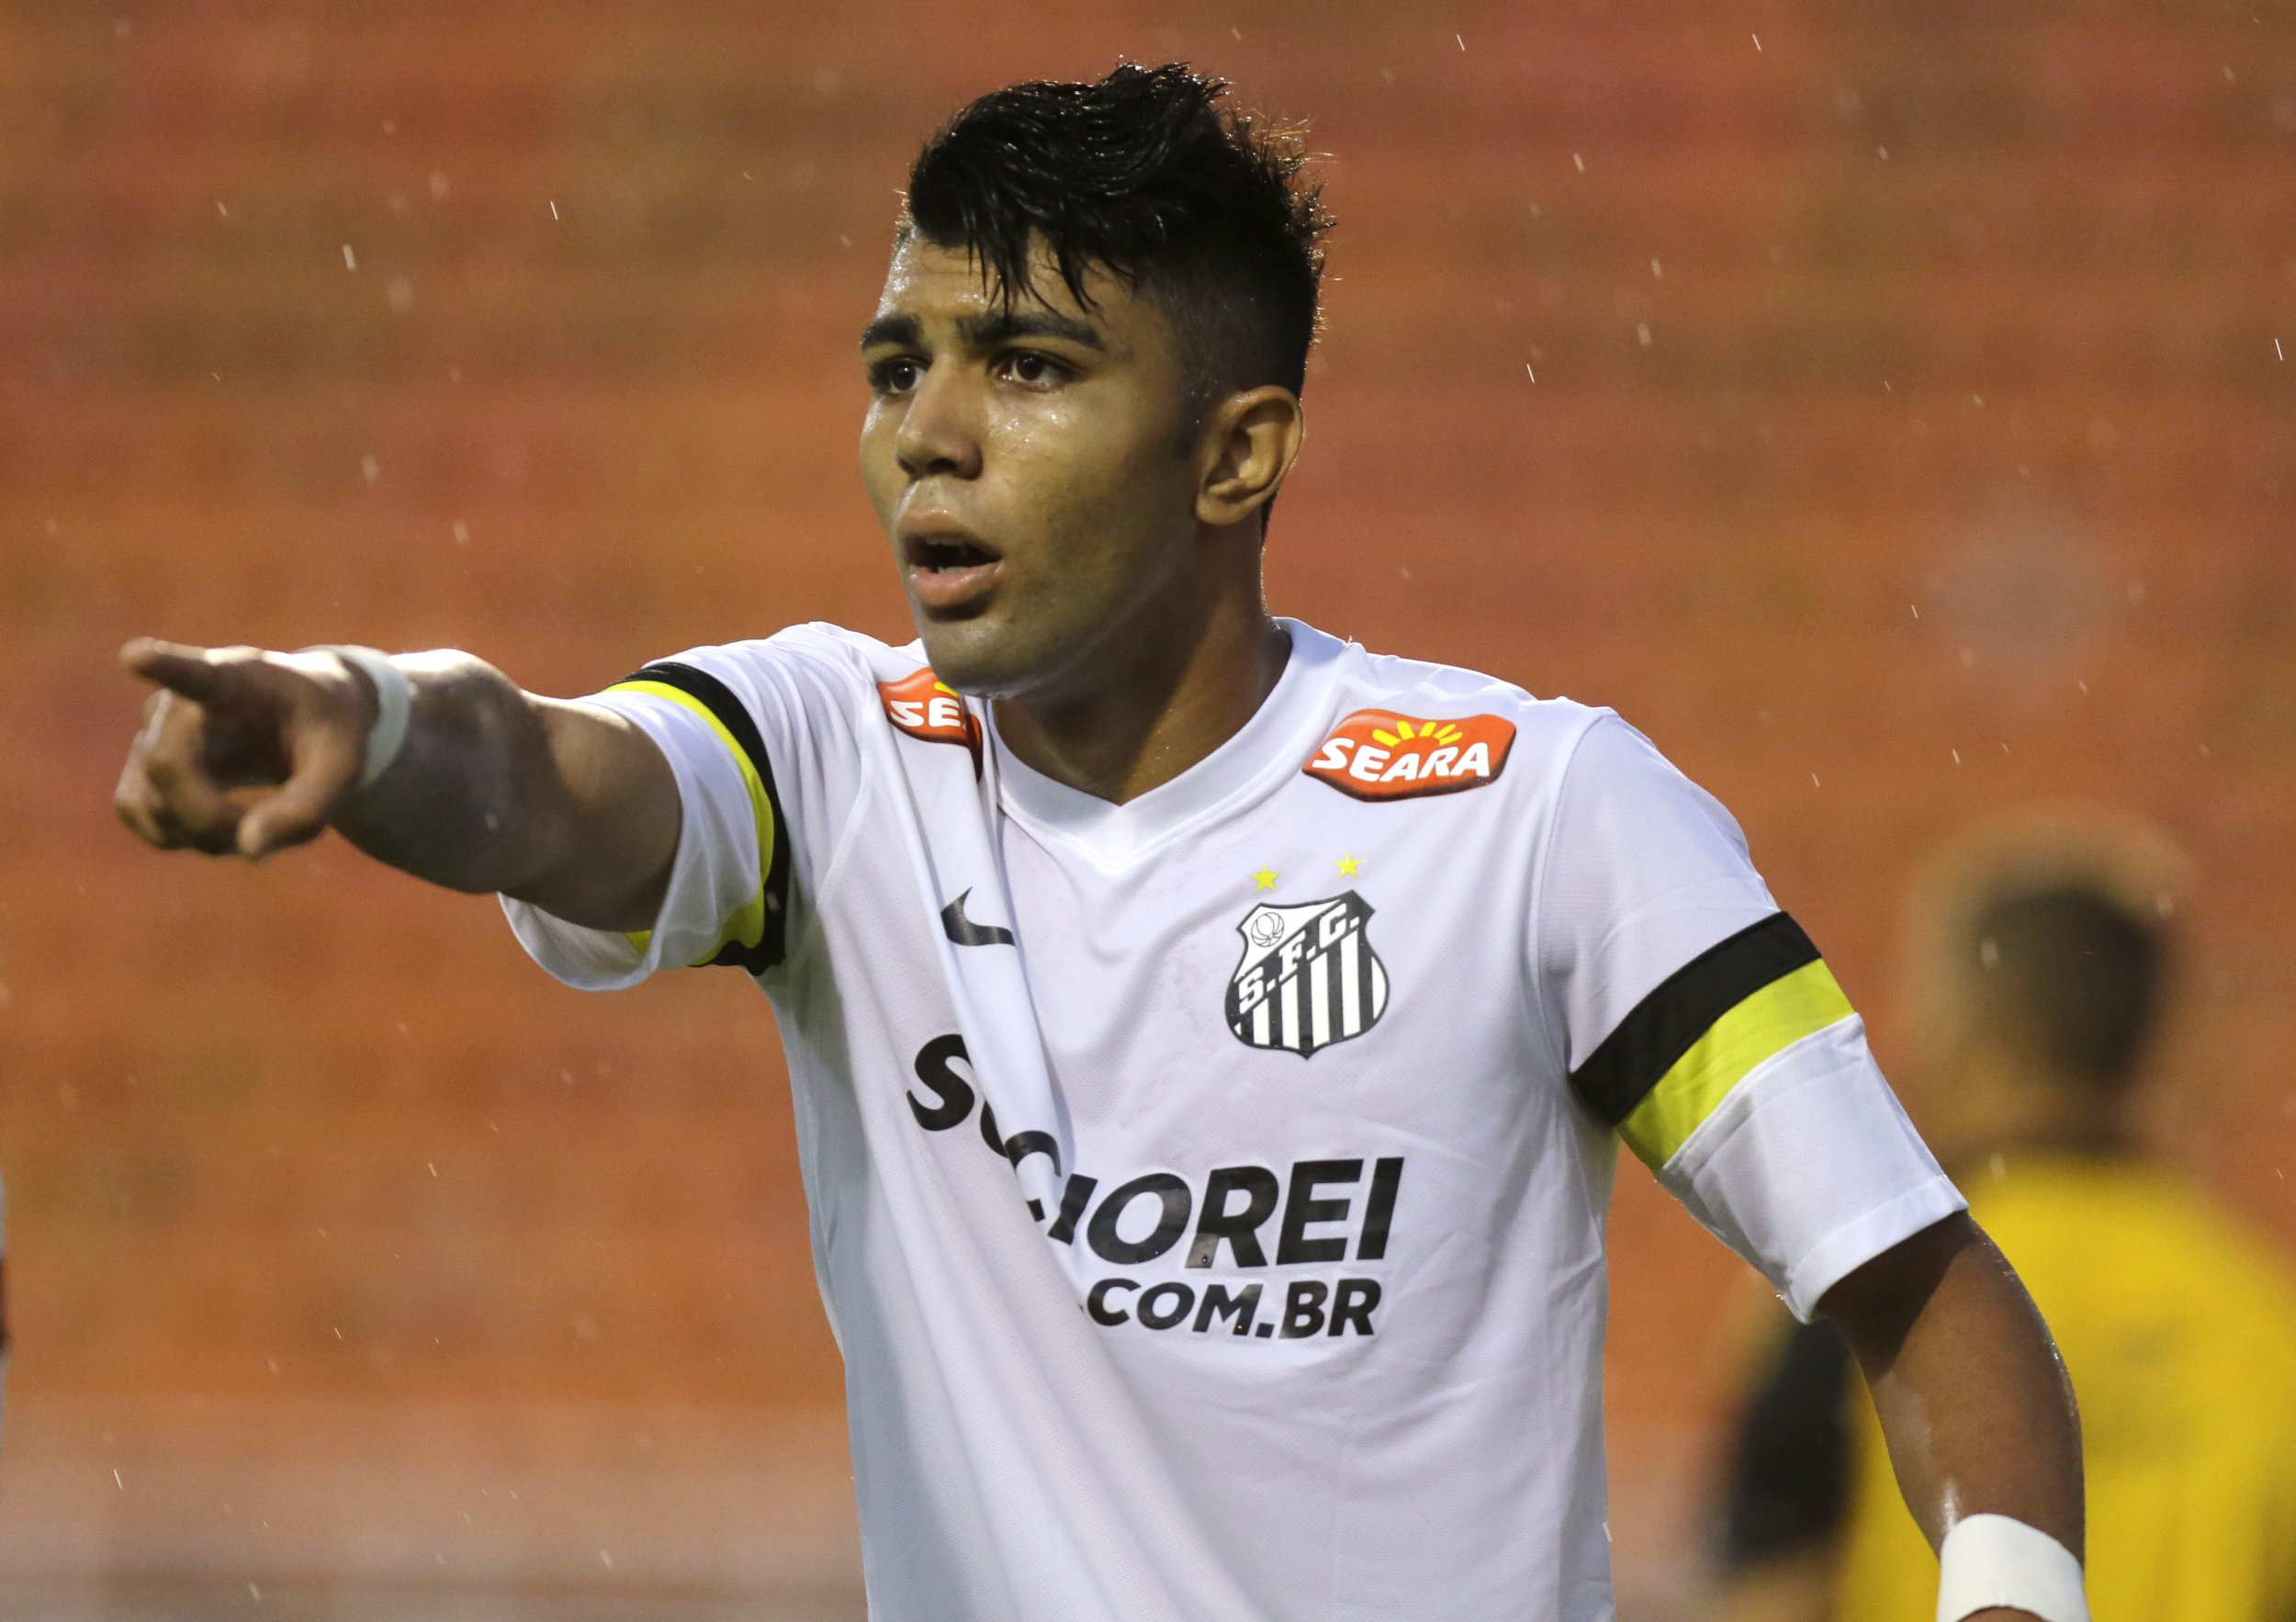 In this Jan. 21, 2014 photo, Santos' Gabriel Barbosa reacts during a Campeonato Paulista soccer game at Pacaembu stadium, in Sao Paulo, Brazil. Santos striker Gabriel Barbosa doesnít like the comparison, but Brazilians see him as the next Neymar. Howís that for pressure? The 19-year-old Barbosa, who is known universally as ìGabigol,î is ranked as Brazilís most promising player. (AP Photo/Nelson Antoine)